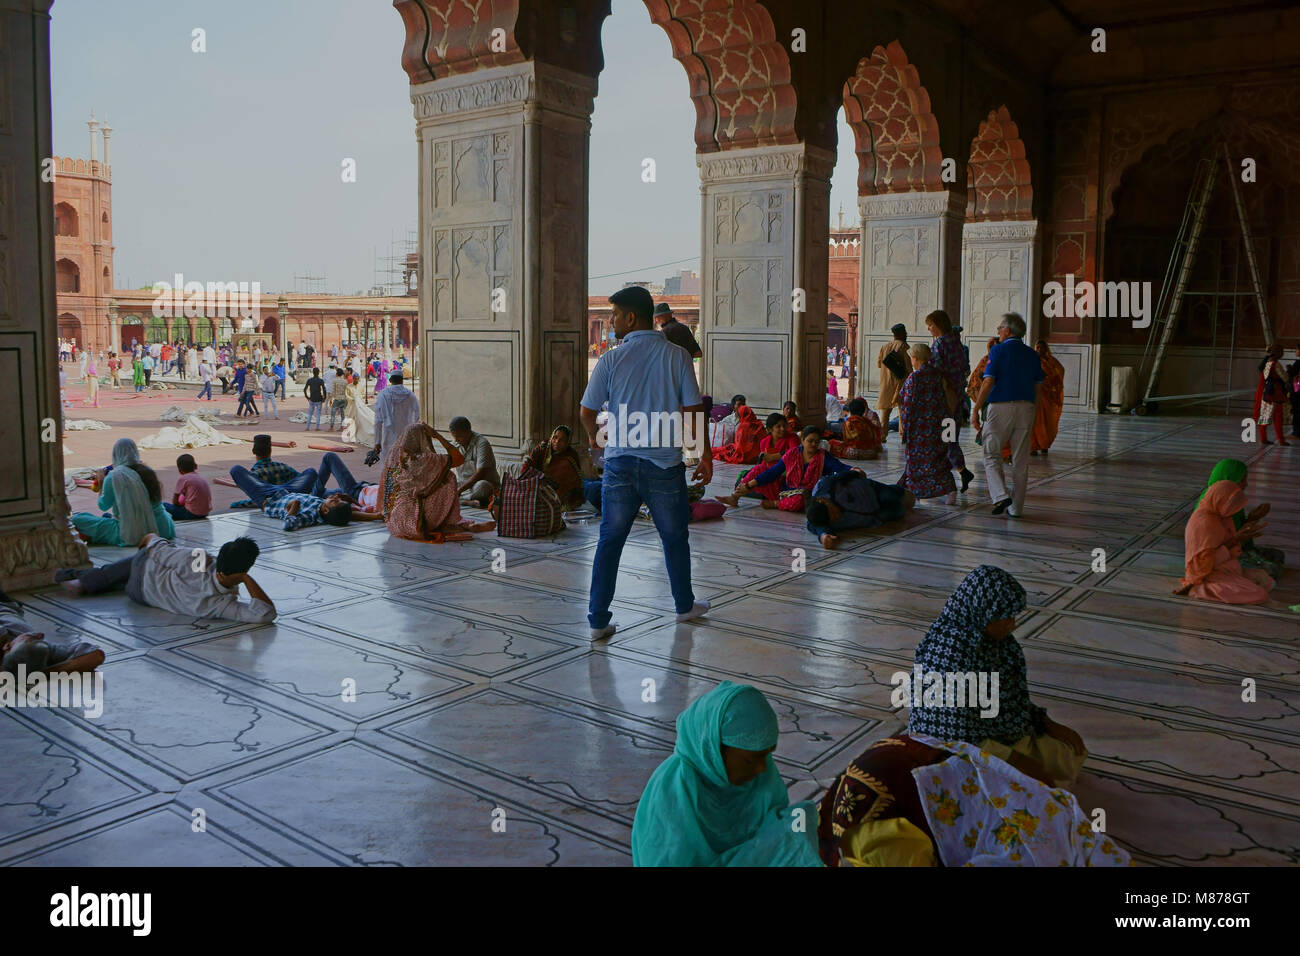 Muslim worshippers praying and relaxing during Friday Prayer, Jama Masjid Mosque, Old Delhi, India Stock Photo